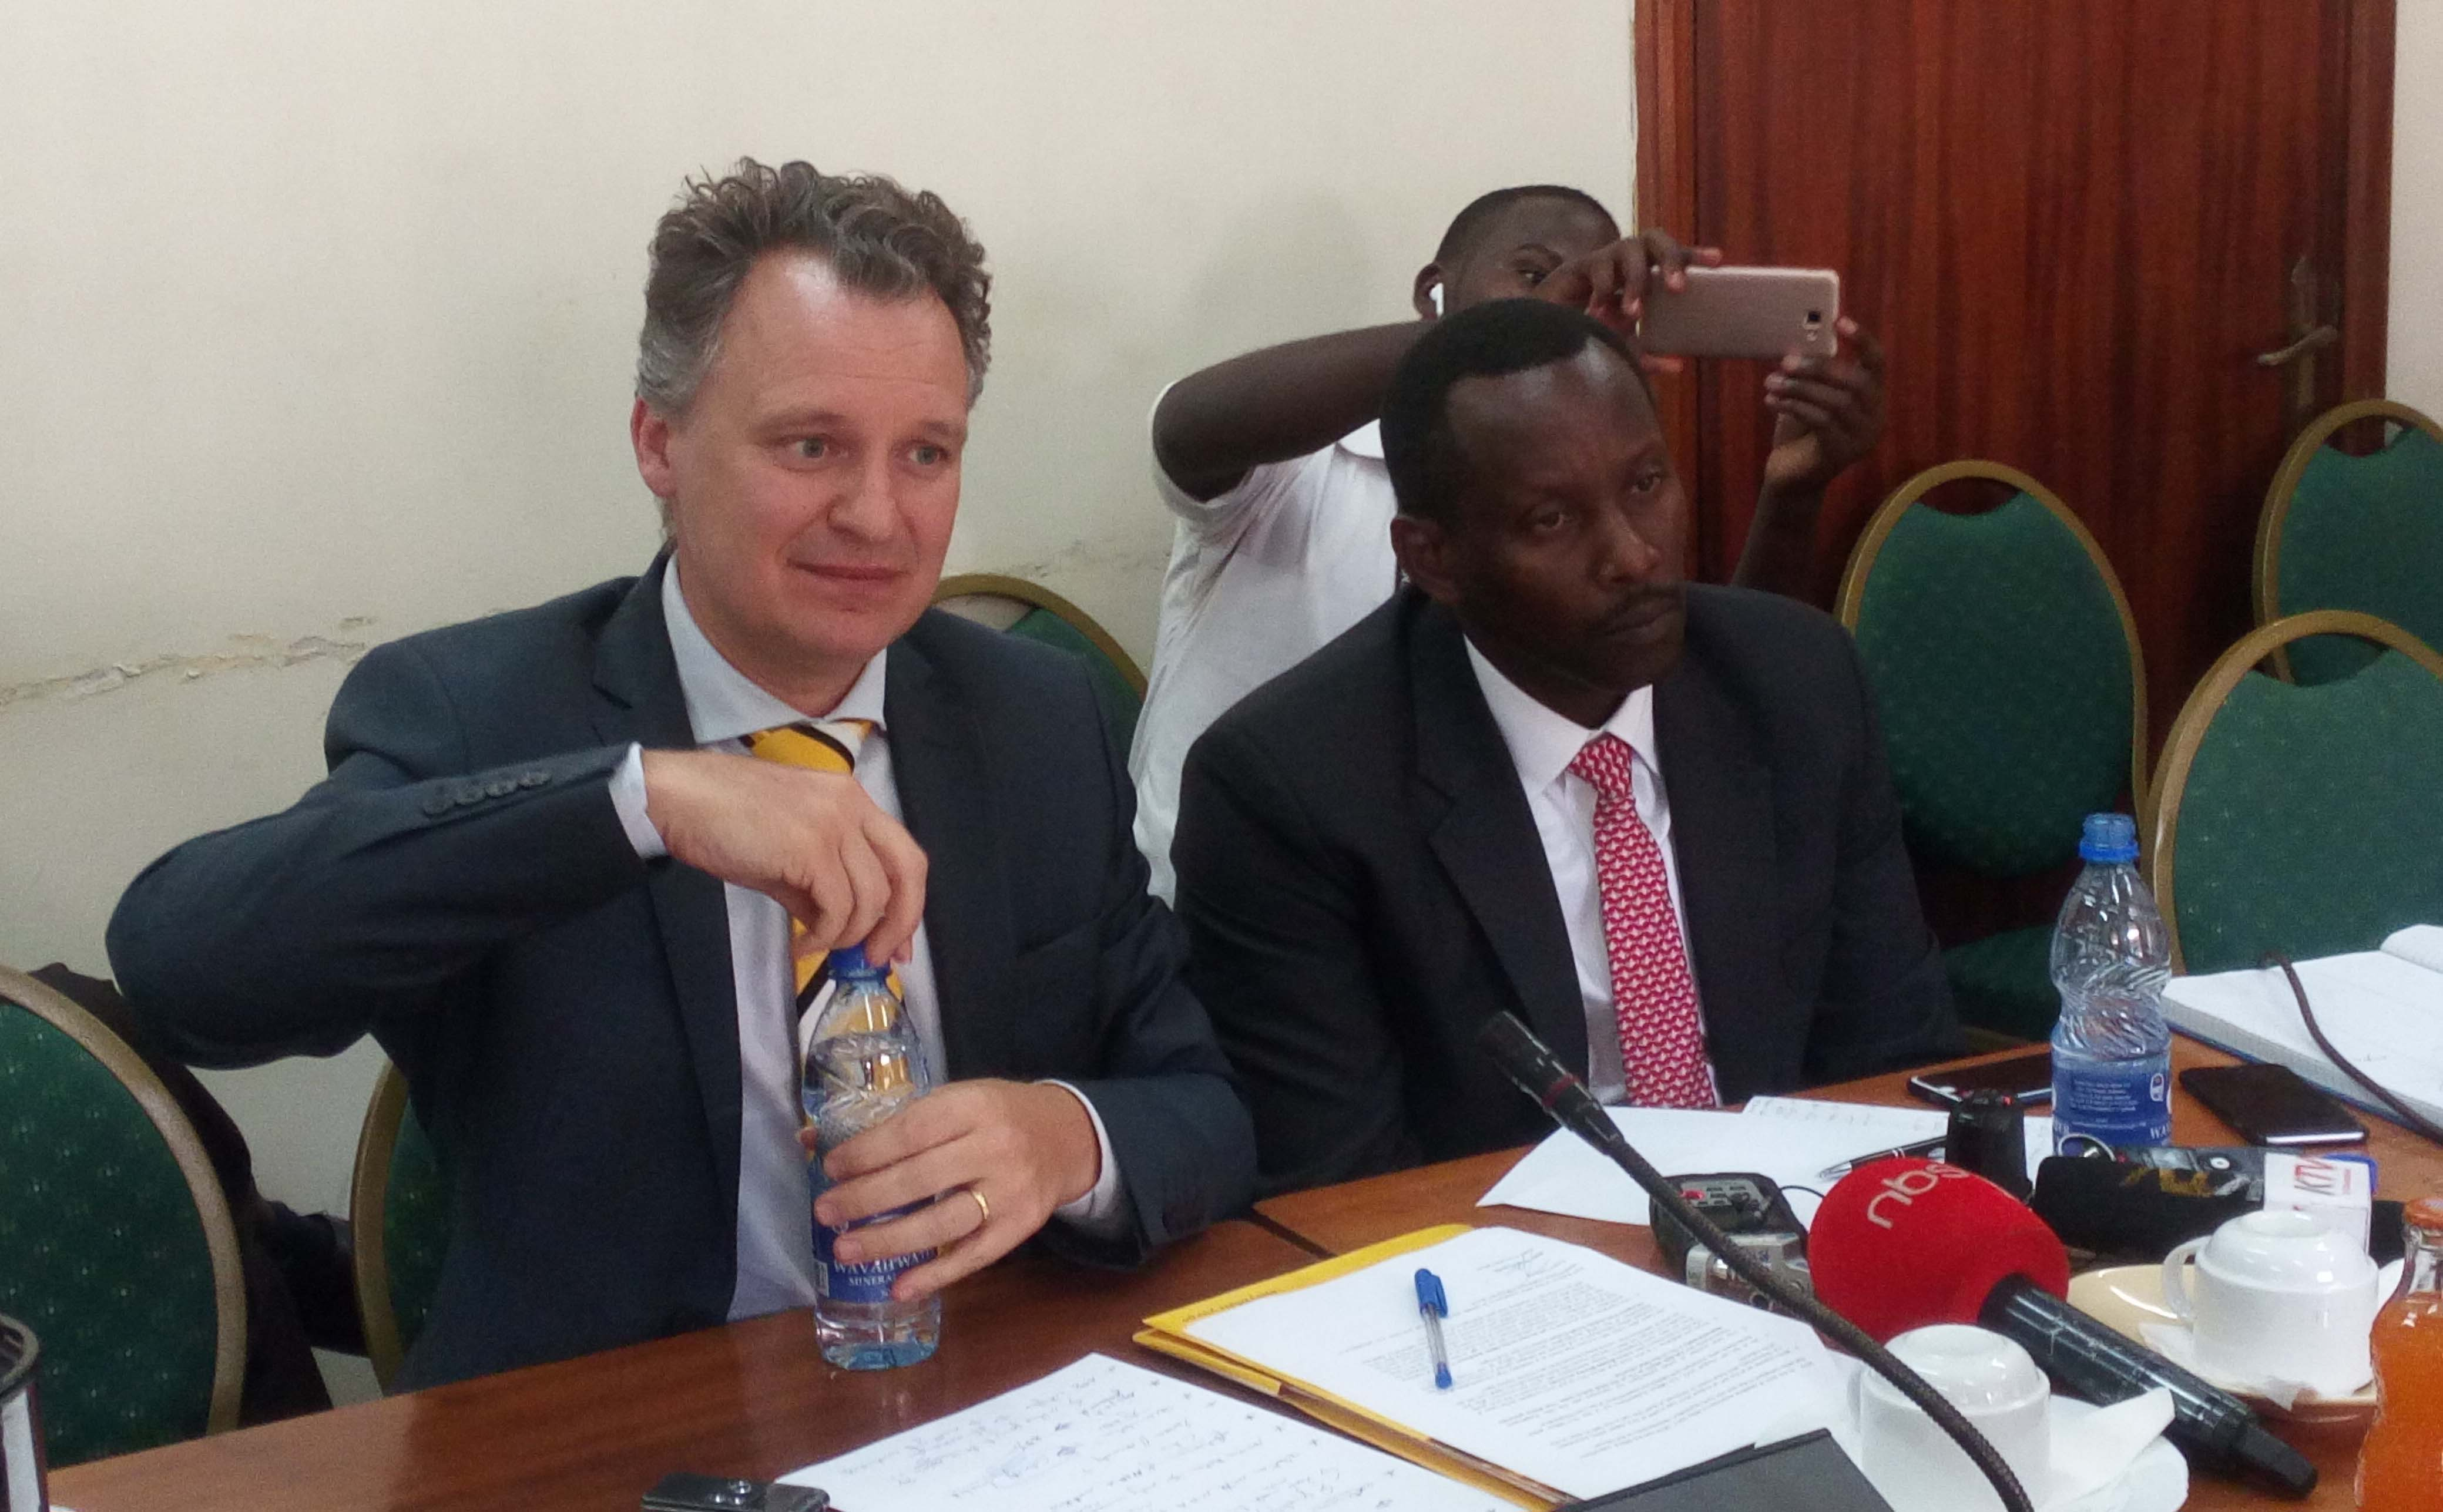 Former MTN Uganda boss Wim Vanhelleputt appears before MPs in the ICT committee on Monday August 22, 2018. in the company by the MTN chief legal officer Anthony Katamba (right). (FILE PHOTO)